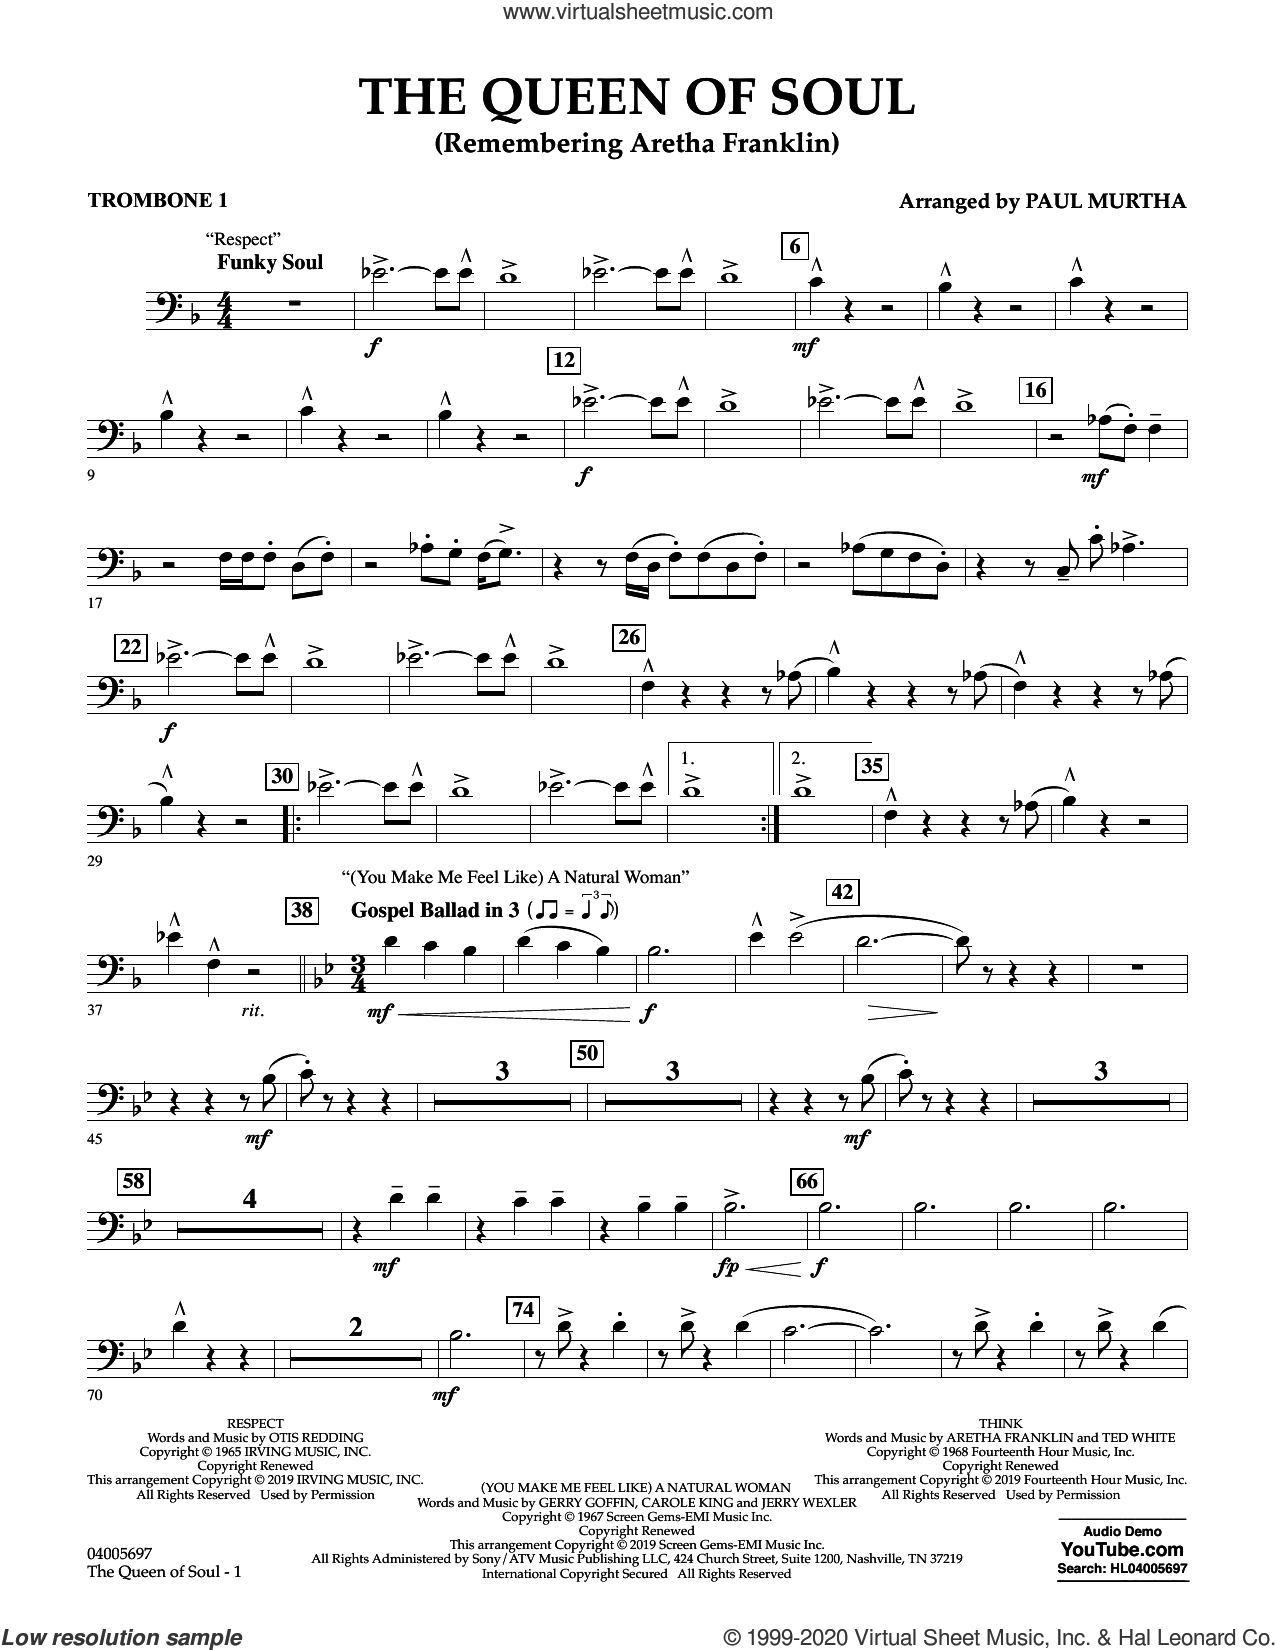 The Queen Of Soul (arr. Paul Murtha)- Conductor Score (Full Score) sheet music for concert band (trombone 1) by Aretha Franklin and Paul Murtha, intermediate skill level